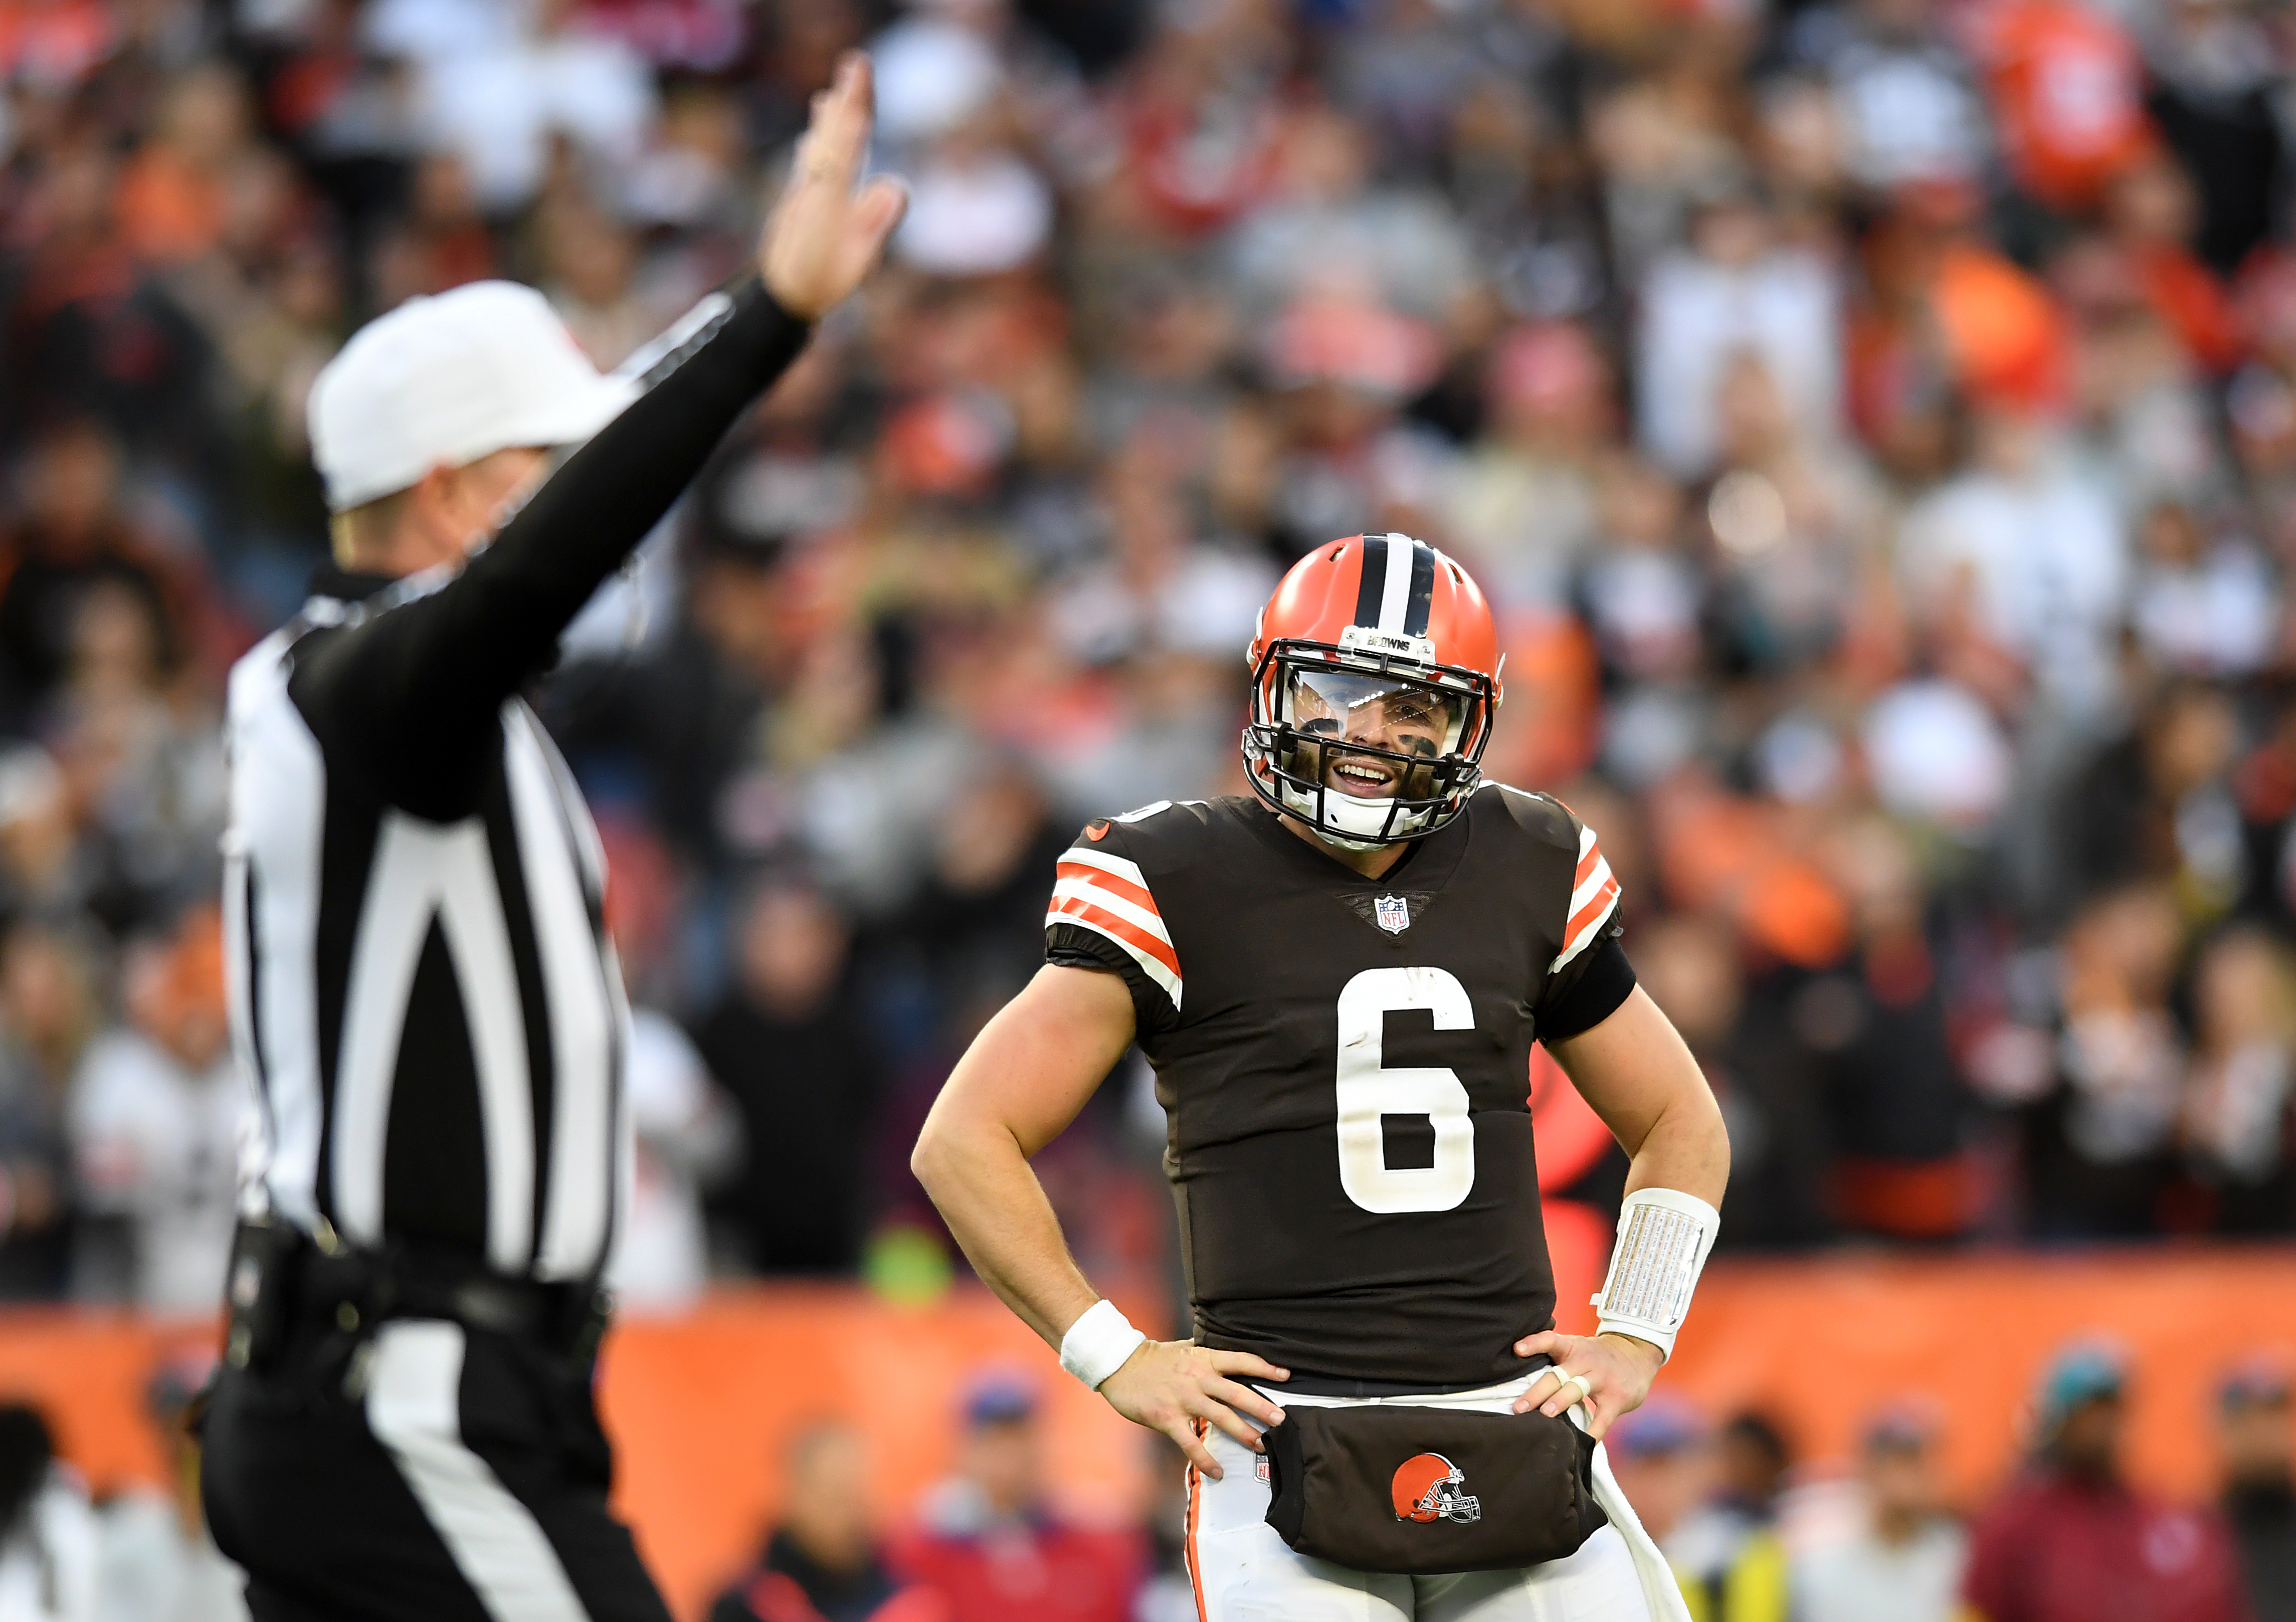 Baker Mayfield #6 of the Cleveland Browns reacts after a call during the fourth quarter against the Arizona Cardinals at FirstEnergy Stadium on October 17, 2021 in Cleveland, Ohio.